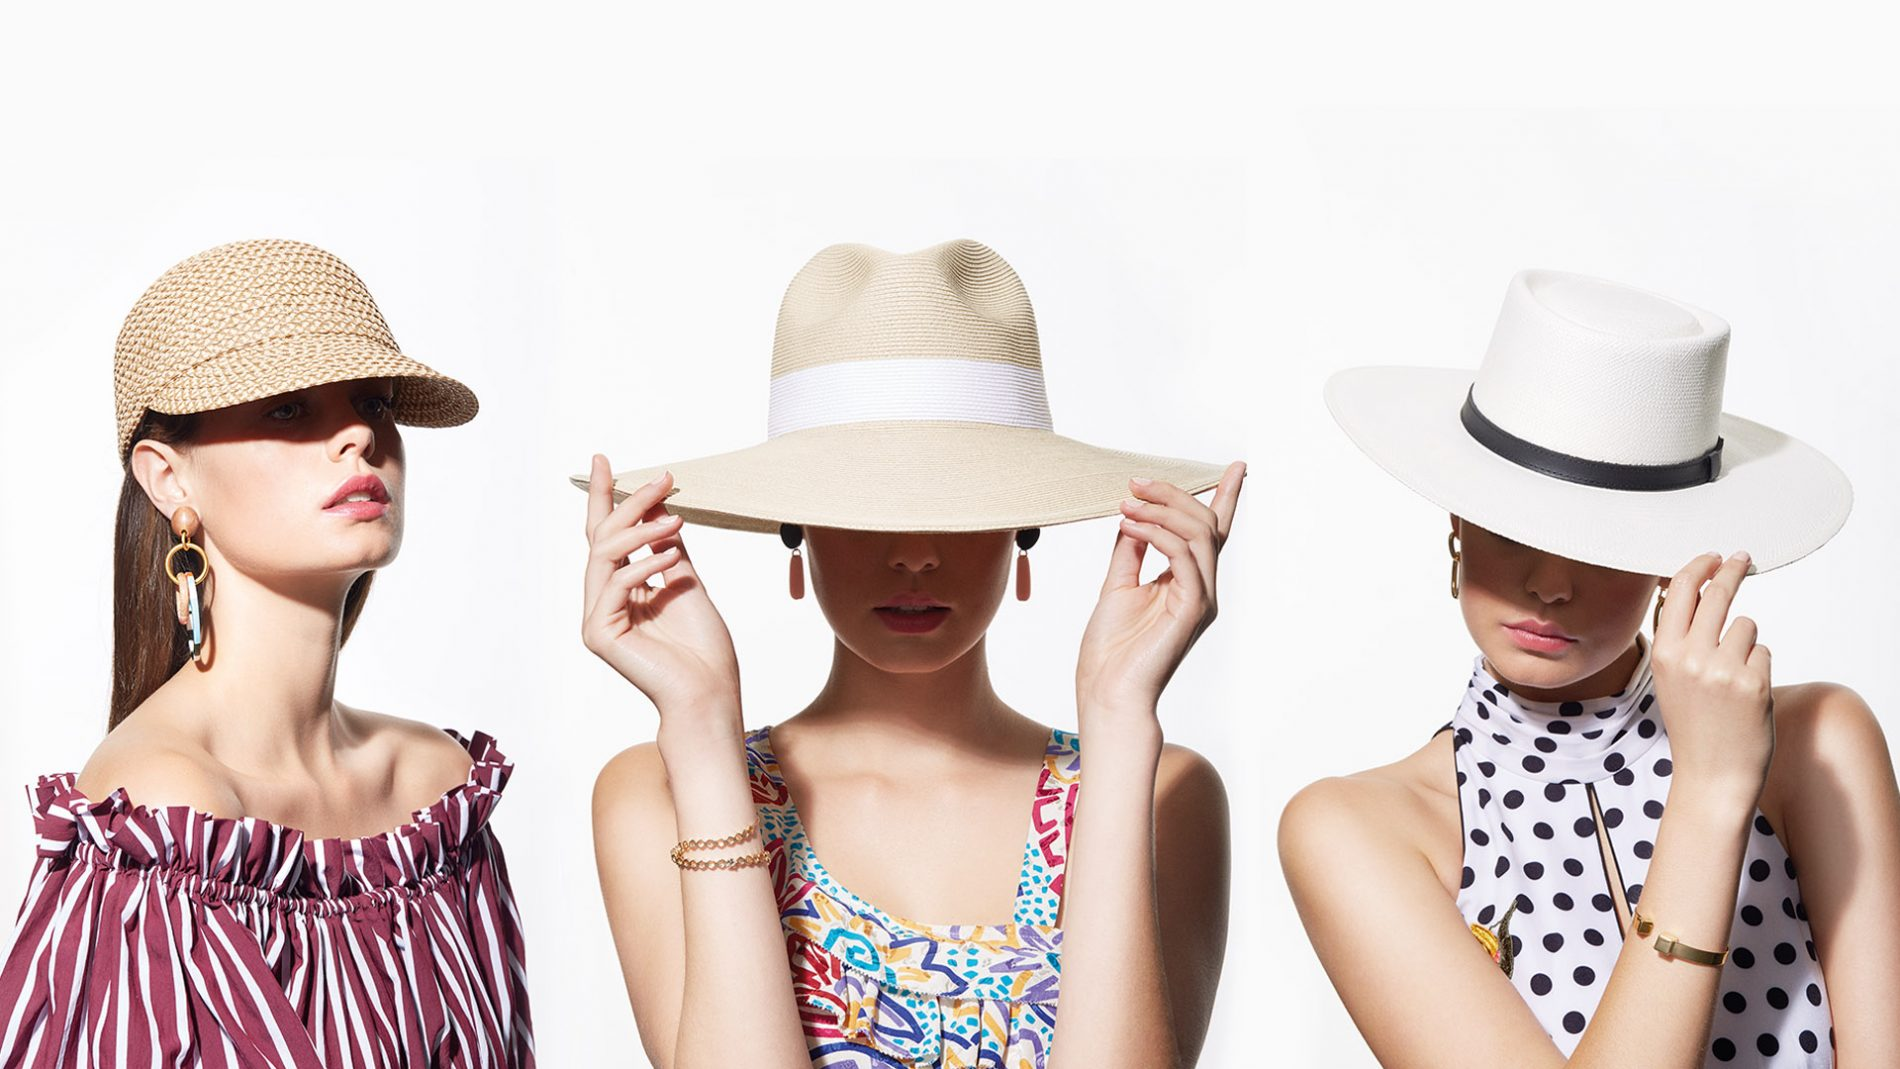 El Corte Inglés Ready-To-Wear Hats Straw Sandro Eric Javitz